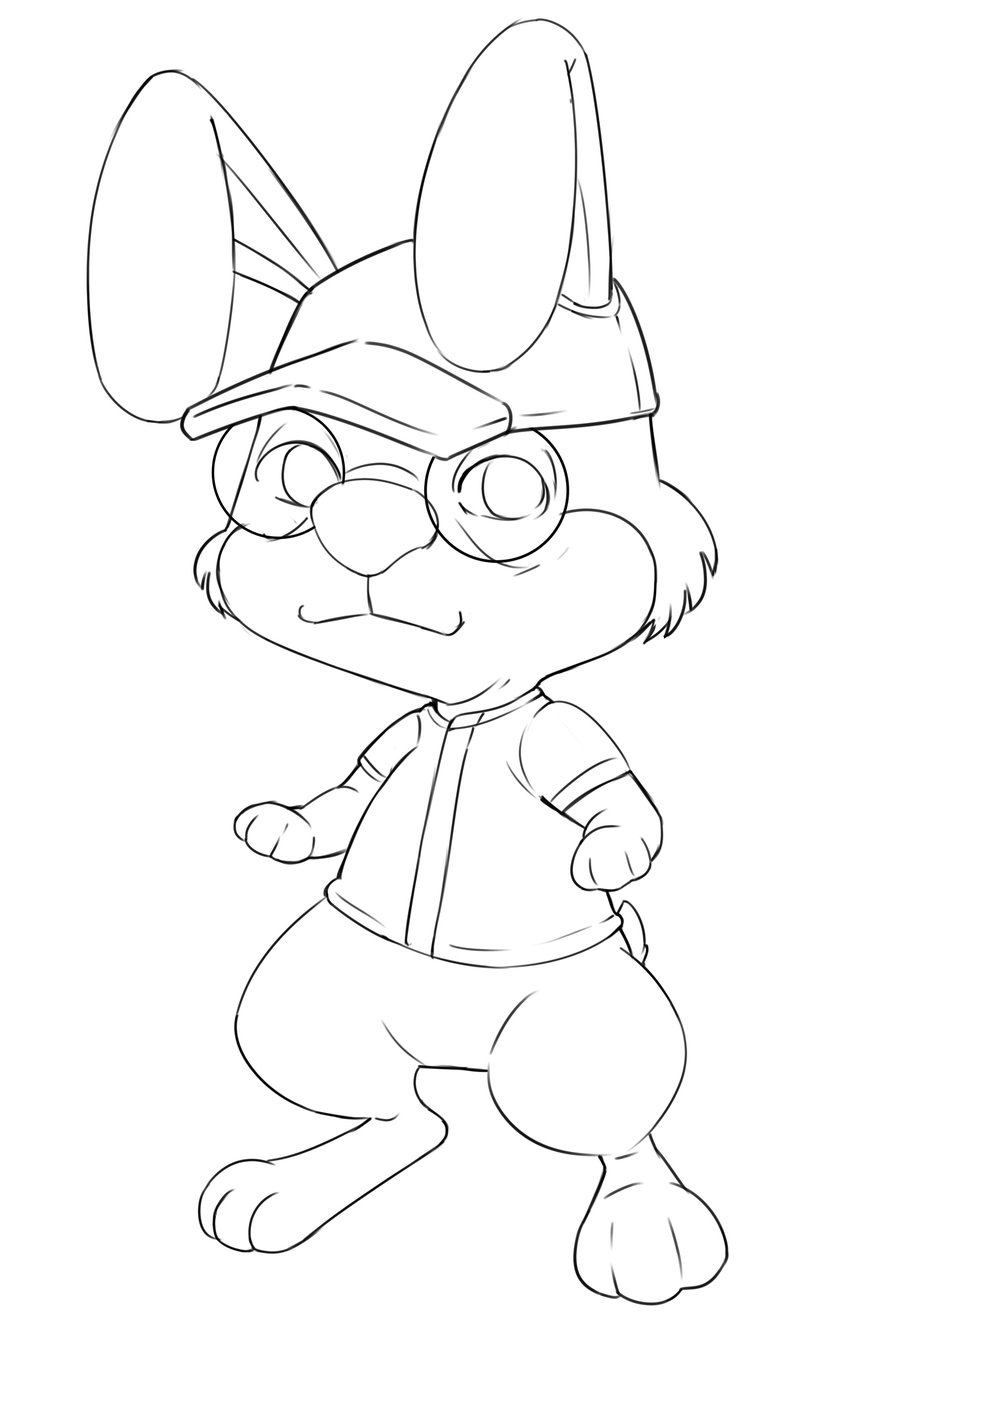 Righty Rabbit ROUND 2.JPG